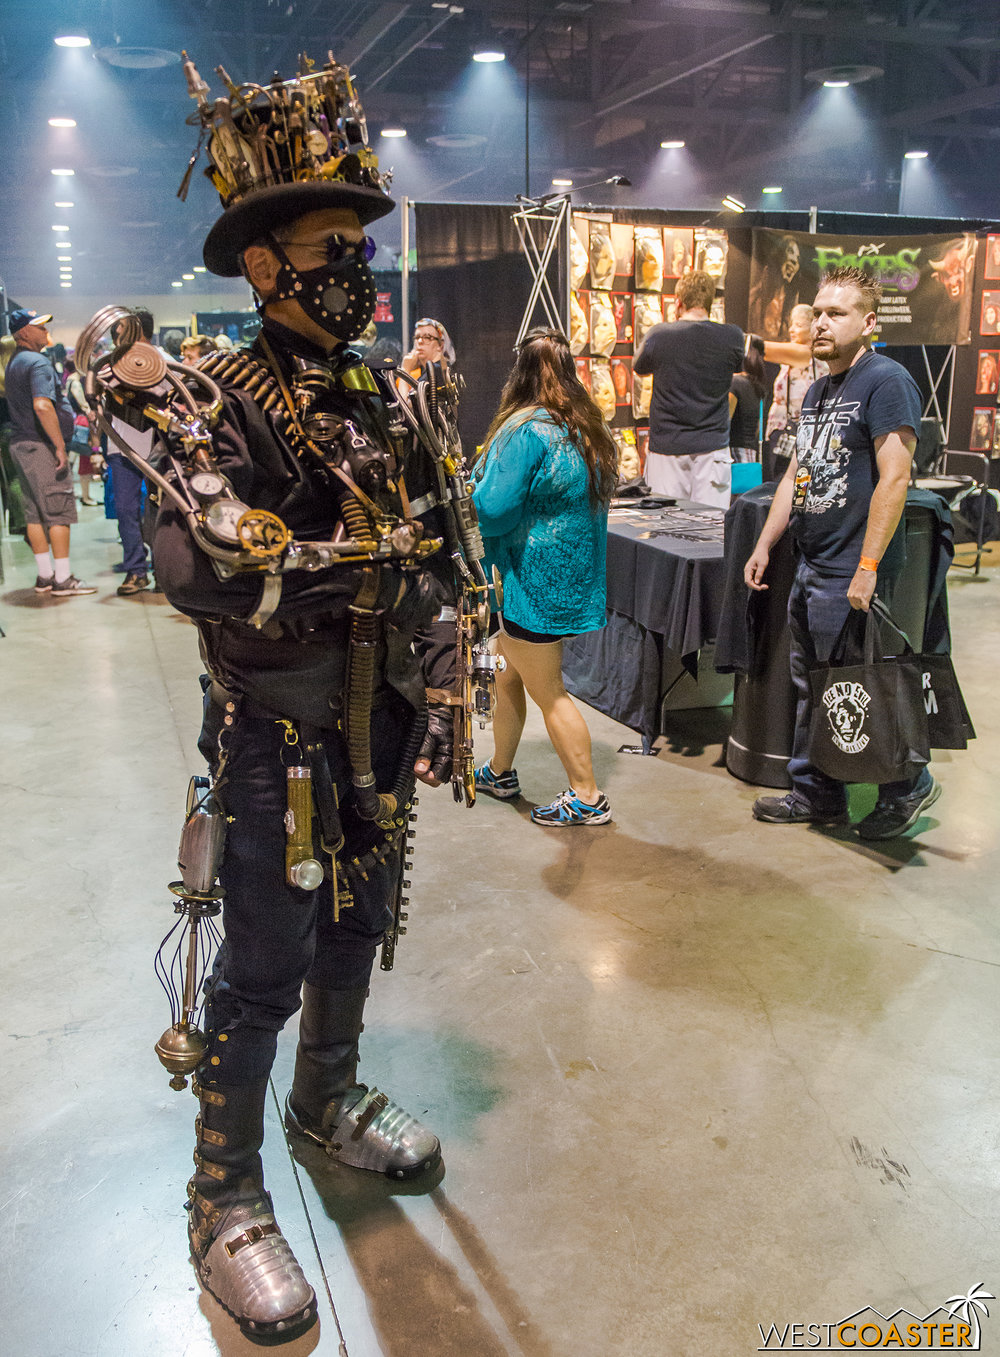 This gentleman's steampunk get-up was quite ornate and attracted plenty of attention.